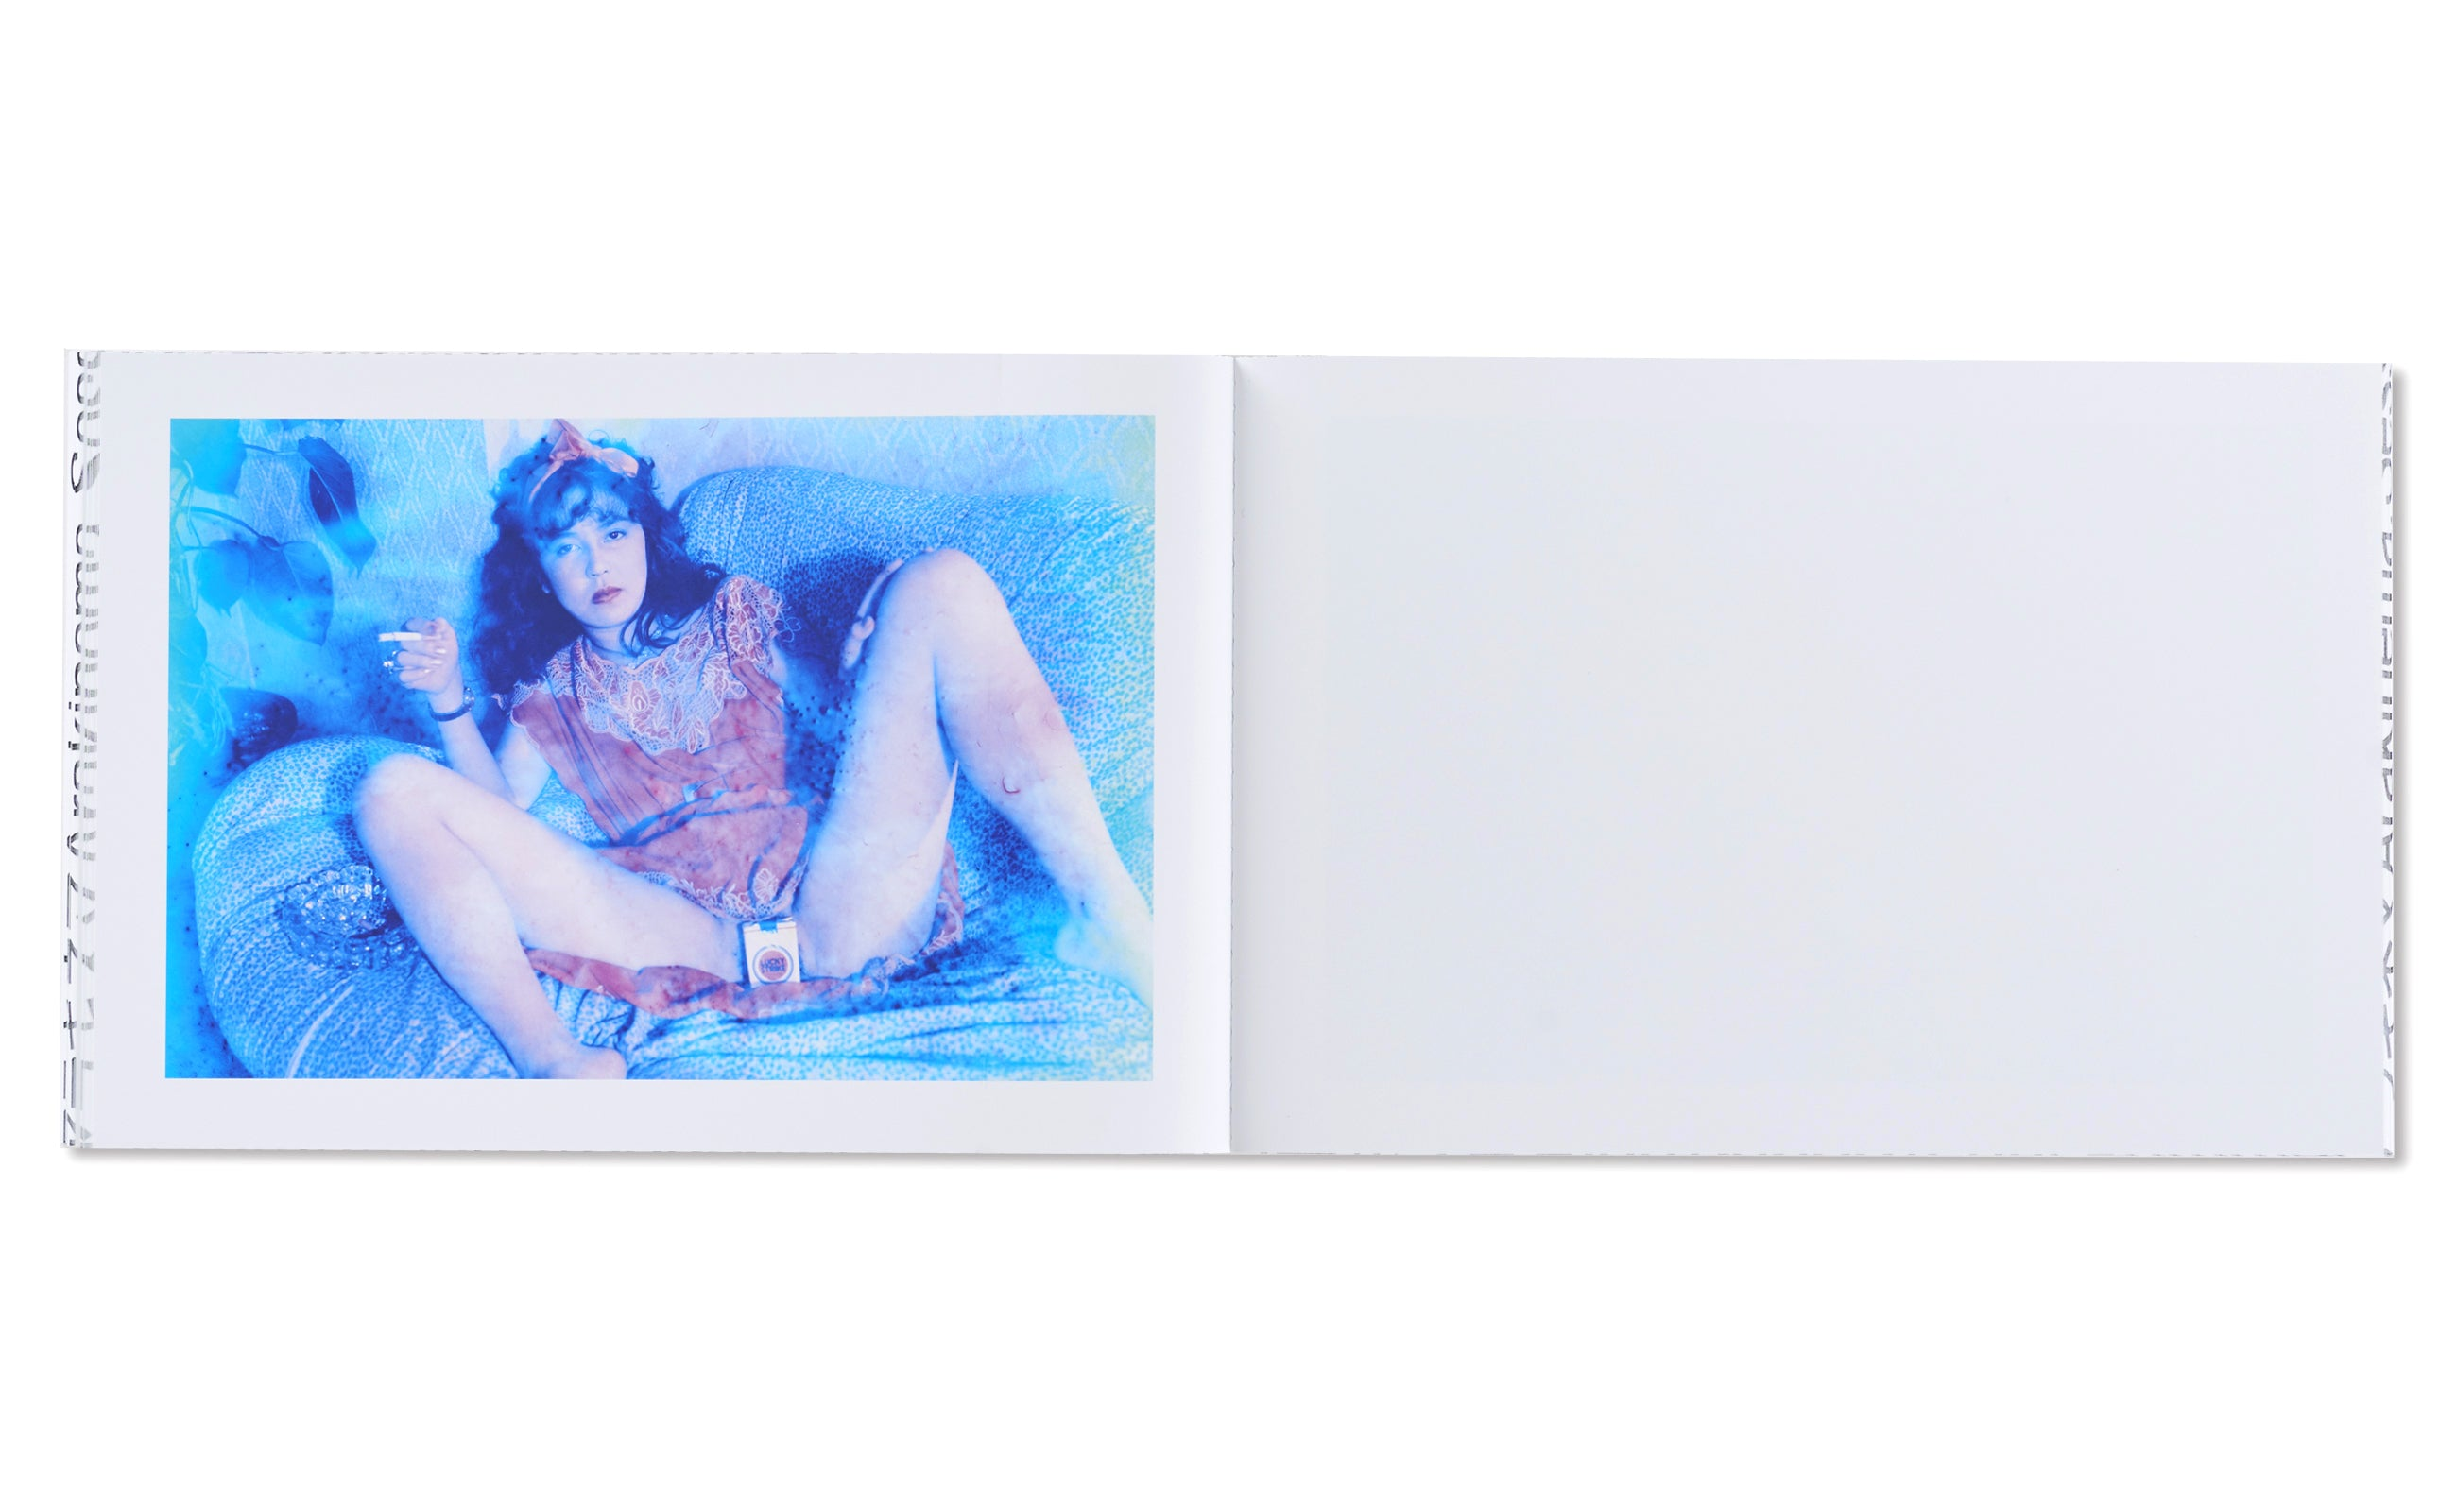 BLUE PERIOD / LAST SUMMER : ARAKINEMA  青ノ時代/去年ノ夏:アラキネマ by Nobuyoshi Araki [JAPAN EDITION]